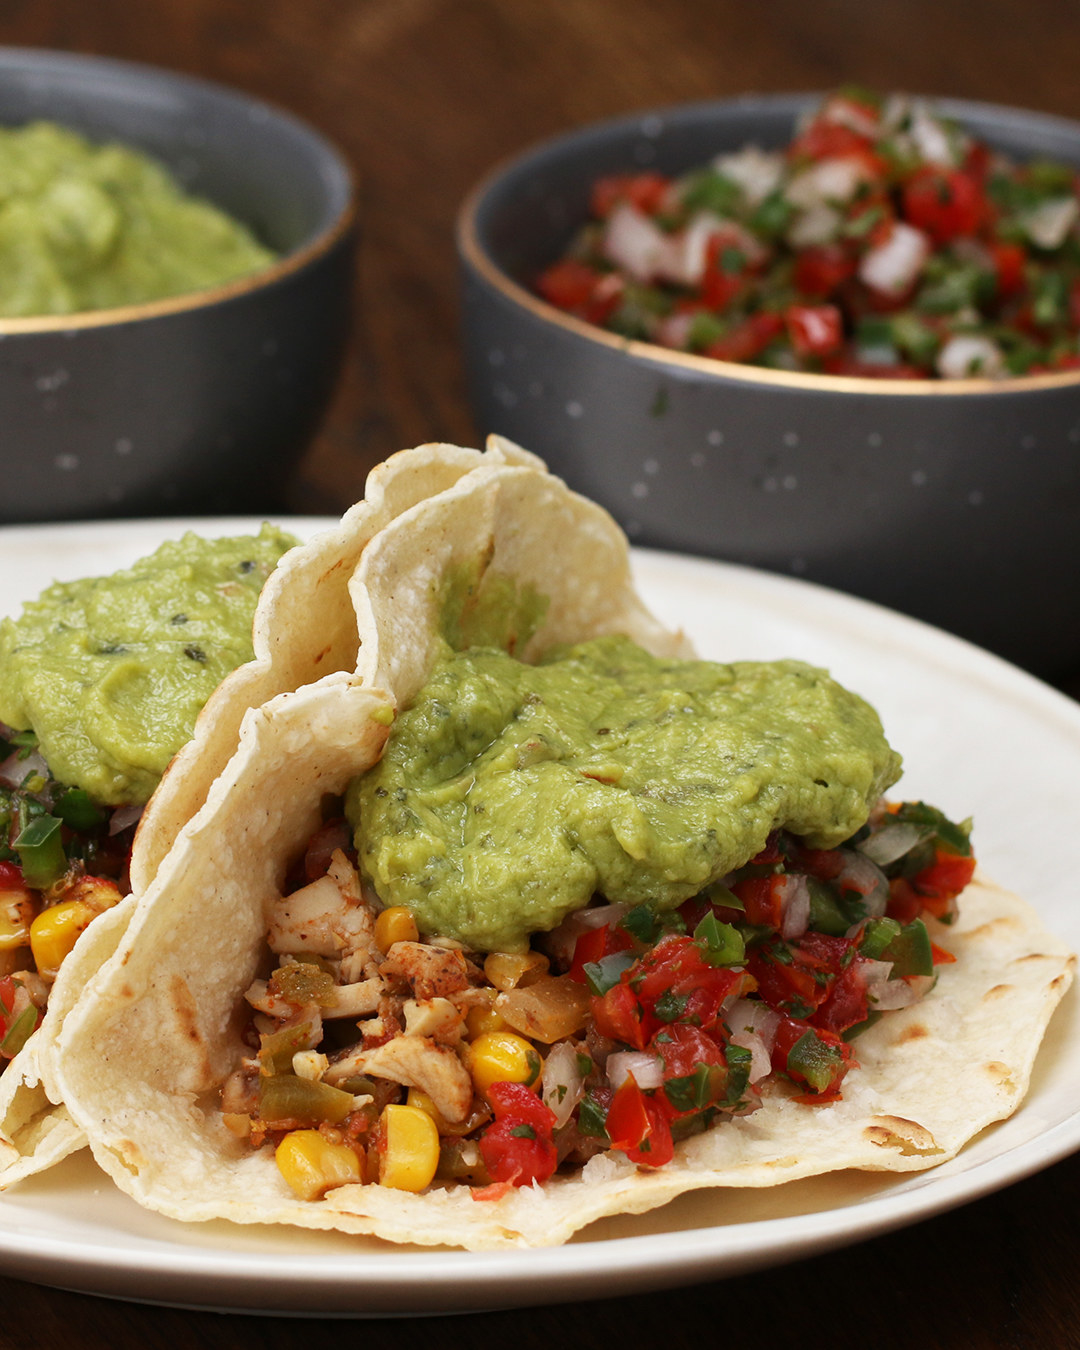 Try These Slow-Cooker Chicken Tacos For Your Next Taco Tuesday